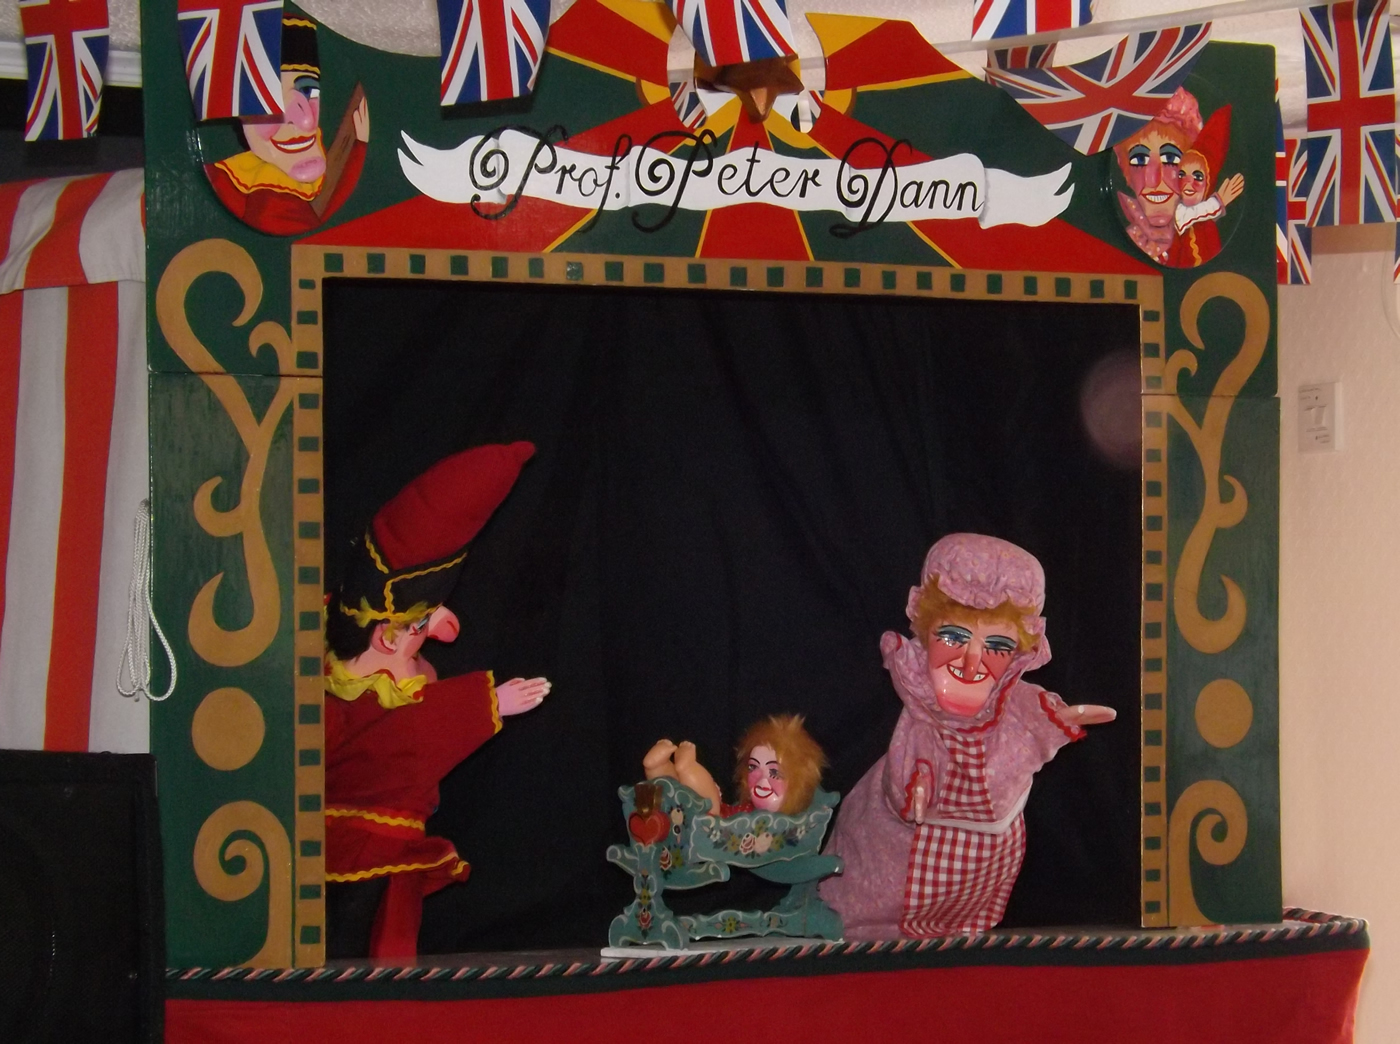 Peter Dann - Member of the Punch & Judy Fellowship